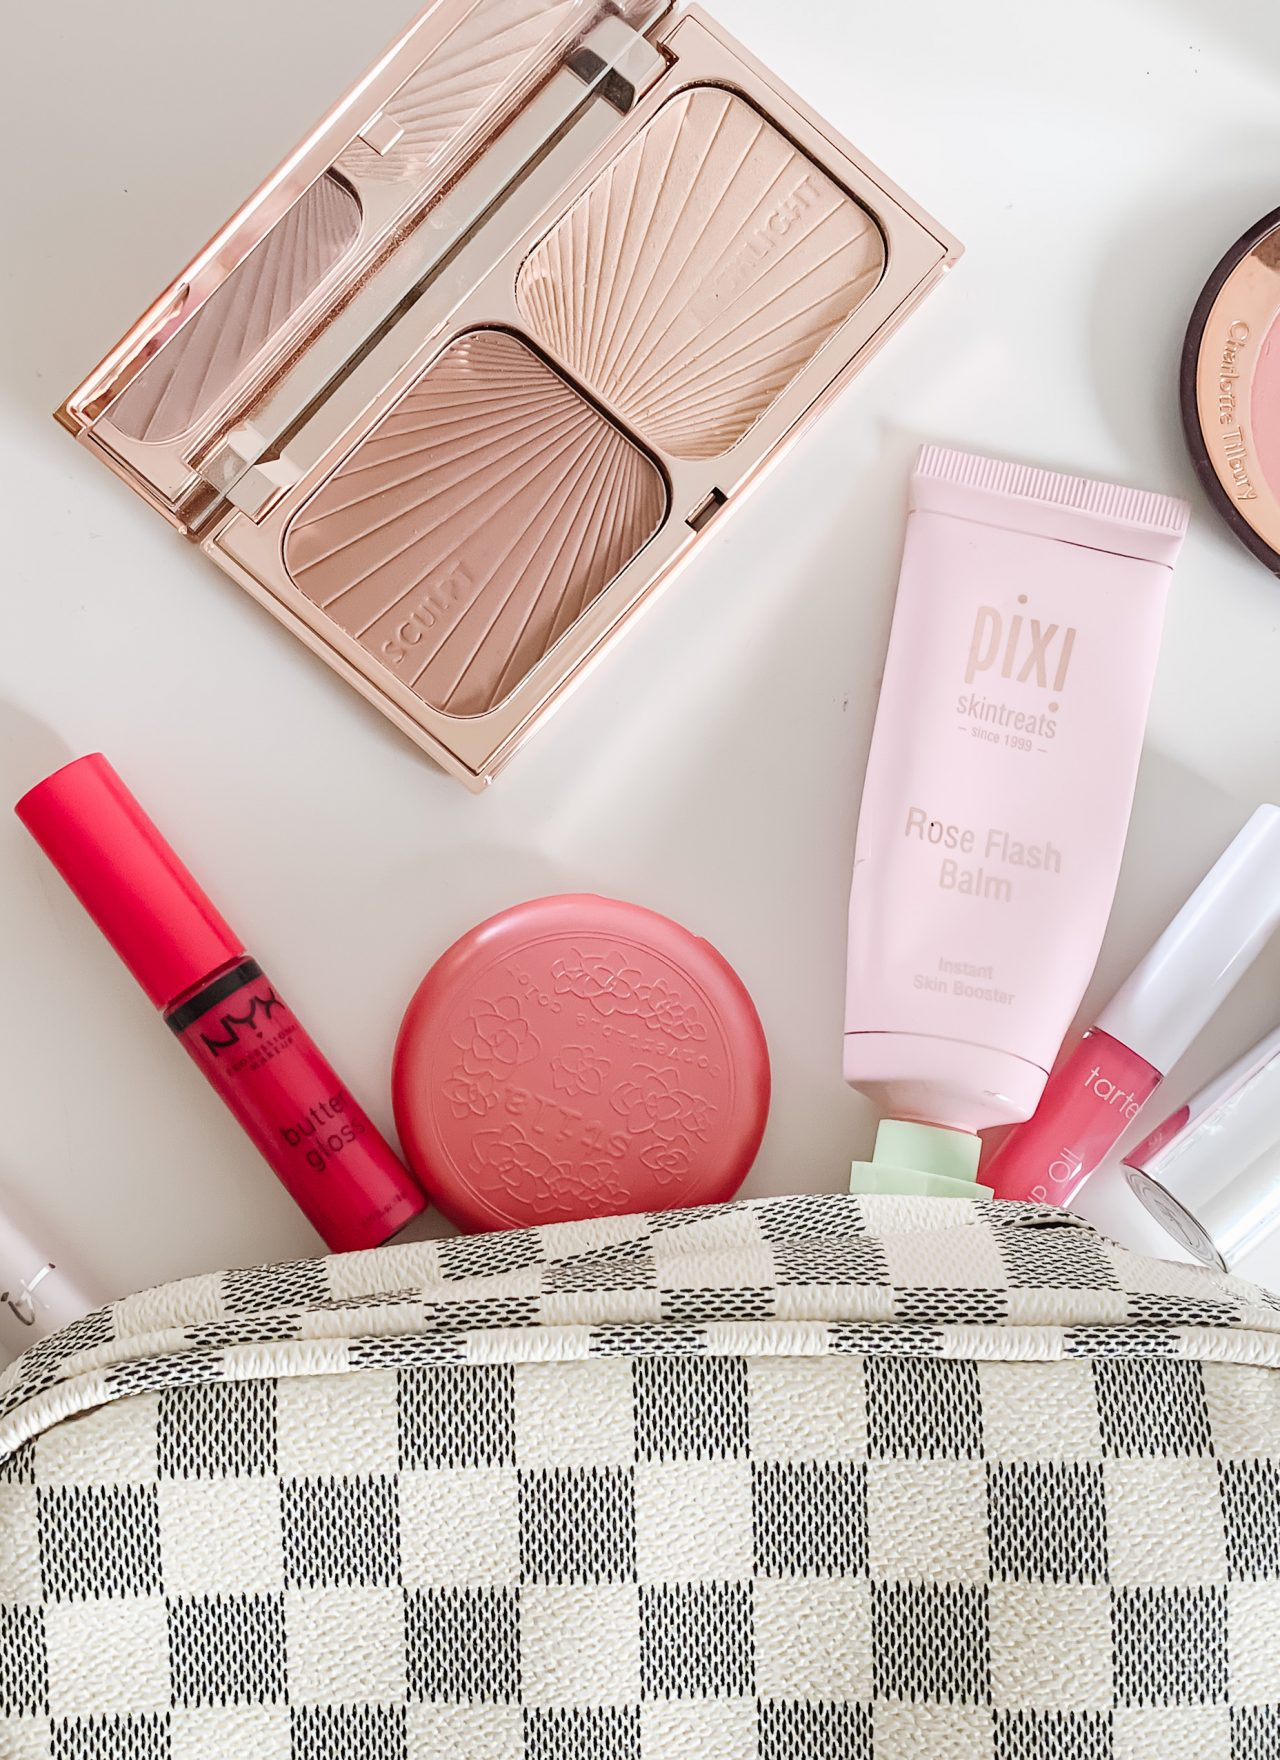 A FRESH SPRING MAKEUP LOOK | I share a spring makeup look, using some new makeup products, and my best tip for incorporating spring makeup trends into your makeup bag. #springmakeup #springmakeuptrends #springmakeupideas